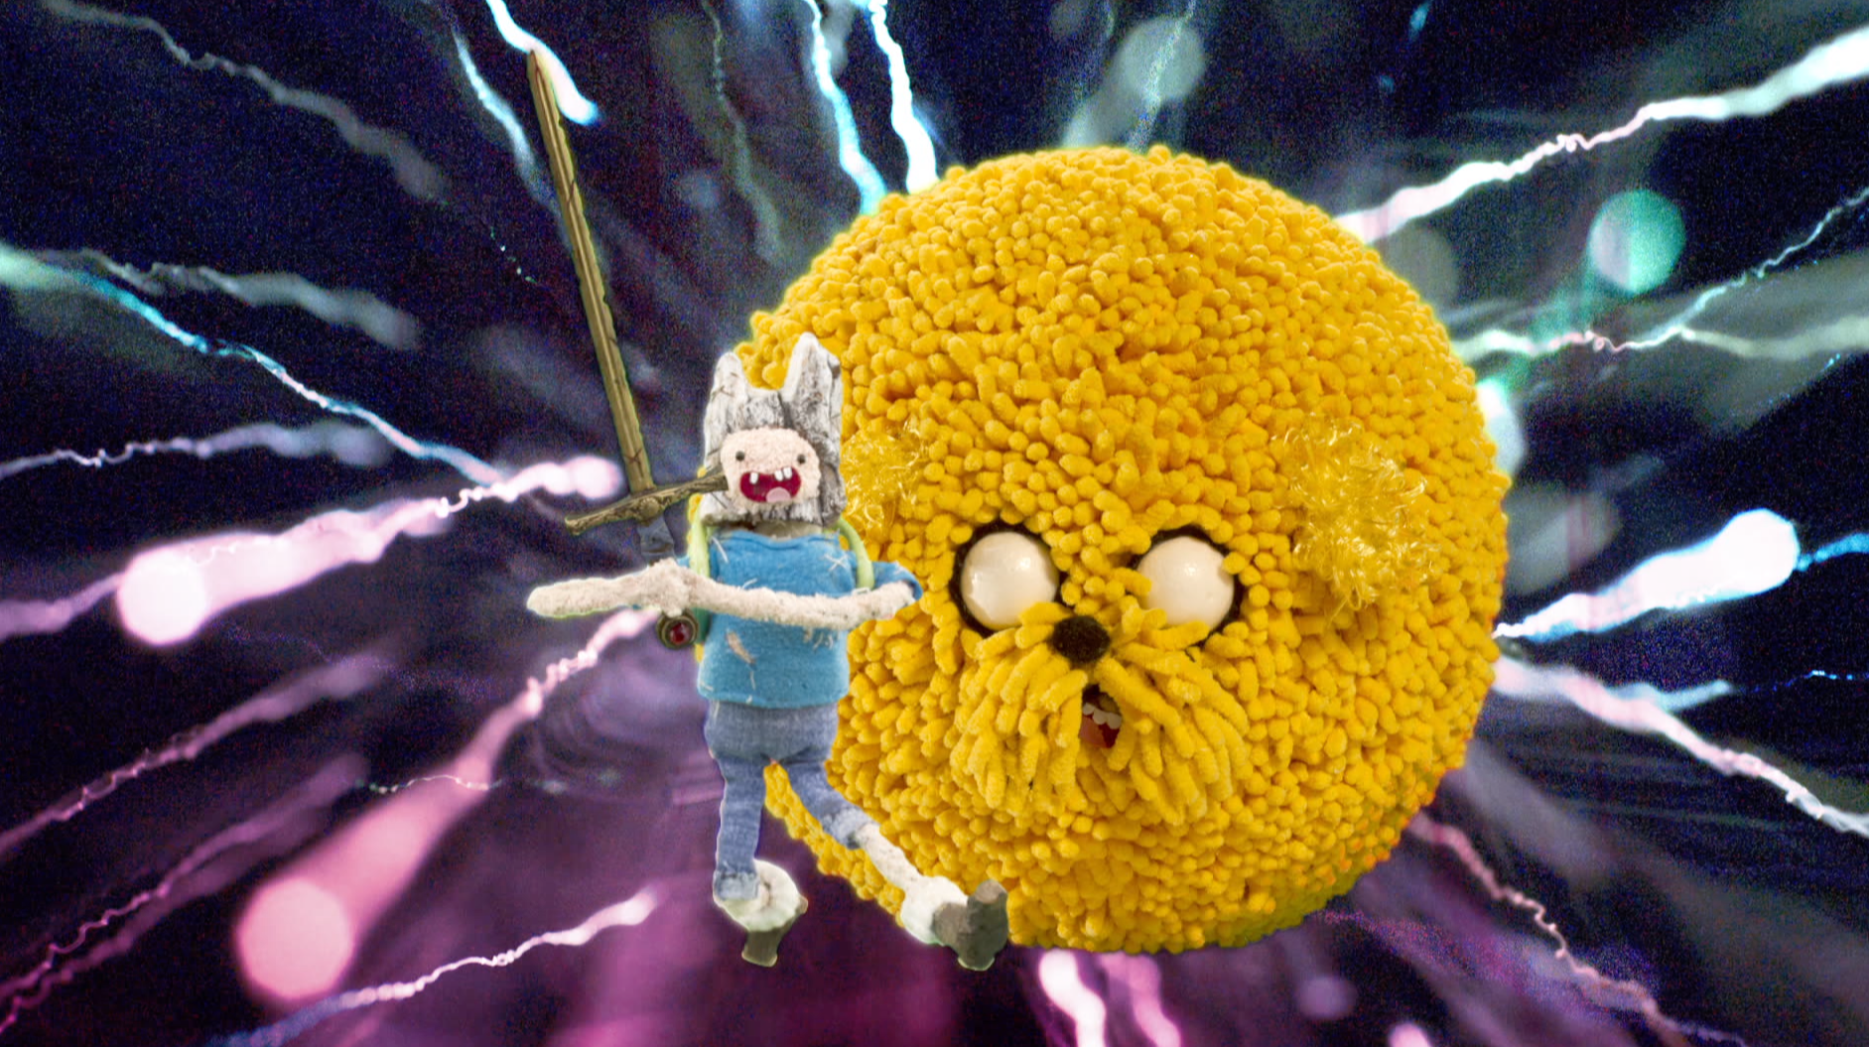 adventure_time_still4 (1).png